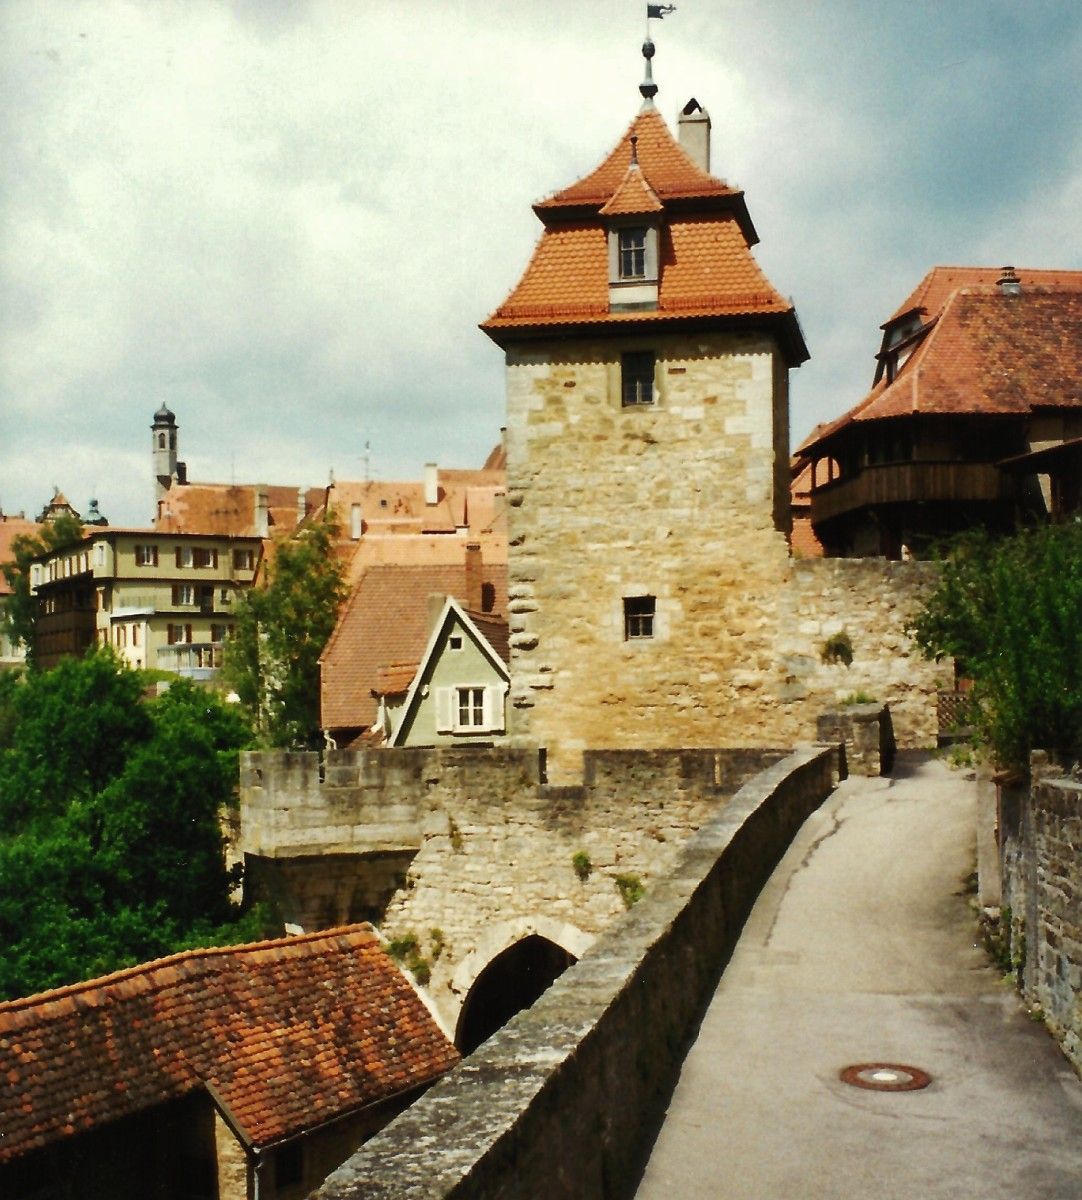 Portion of the city wall in Rothenburg